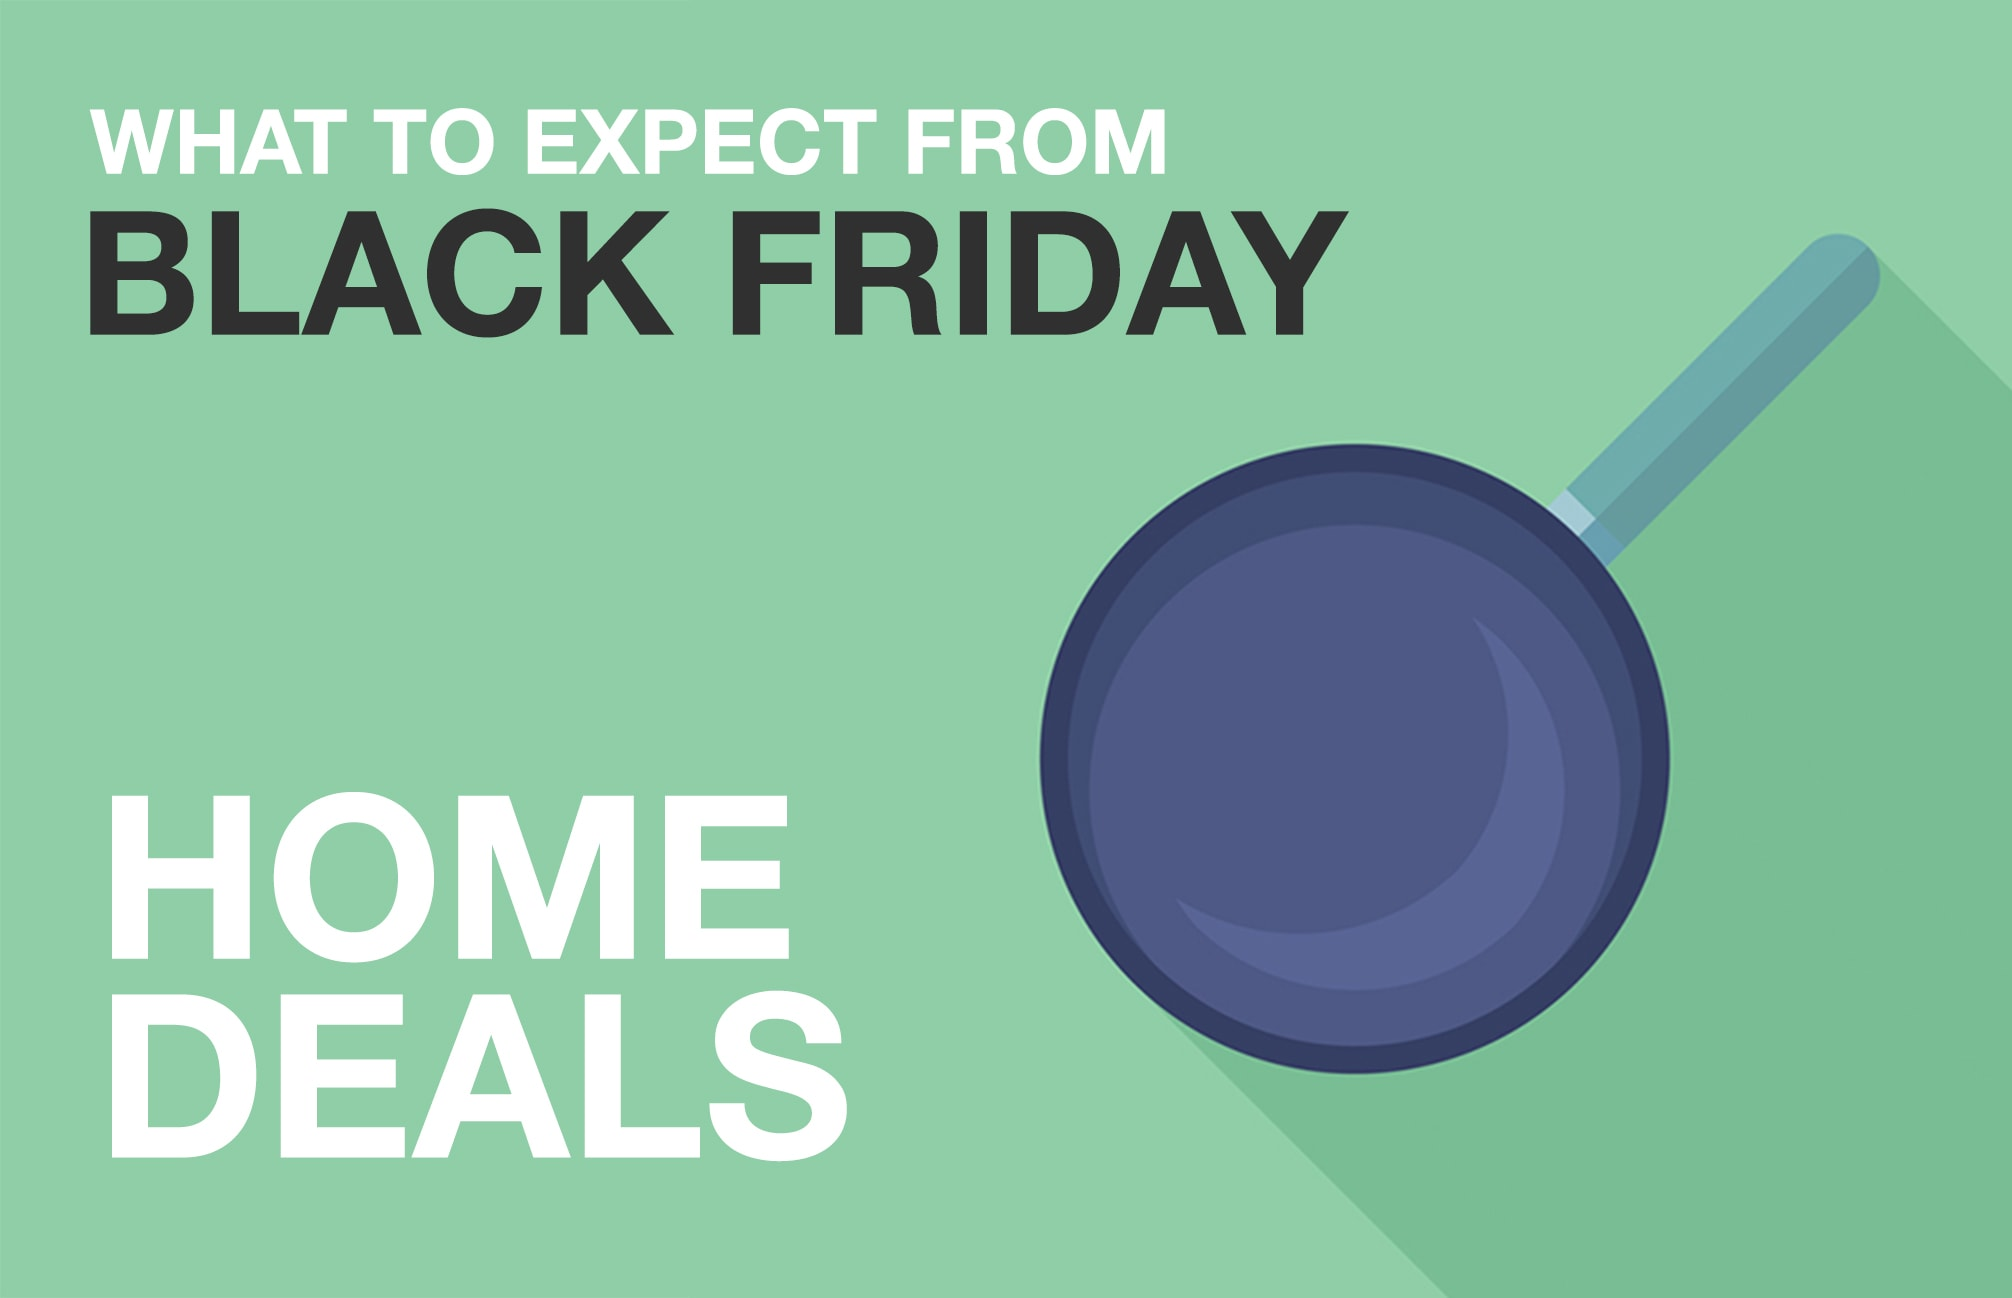 Black Friday Home Goods Predictions 2017 Kitchen Gad s Fall to $8